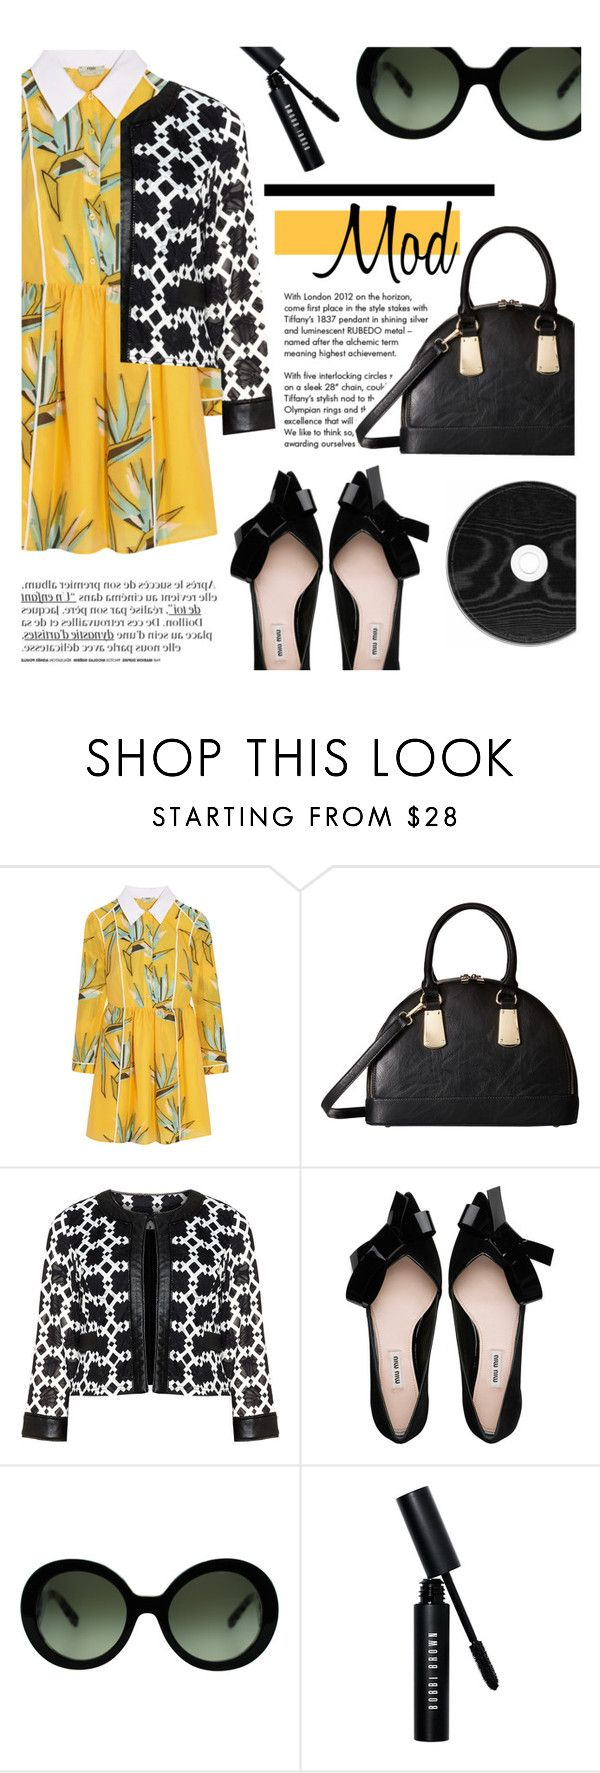 """Mod"" by sofiasolfieri ❤ liked on Polyvore featuring Tiffany & Co., Fendi, Gabriella Rocha, Tia, Prada, Bobbi Brown Cosmetics, vintage, prints, leatherjacket and VintageInspired"